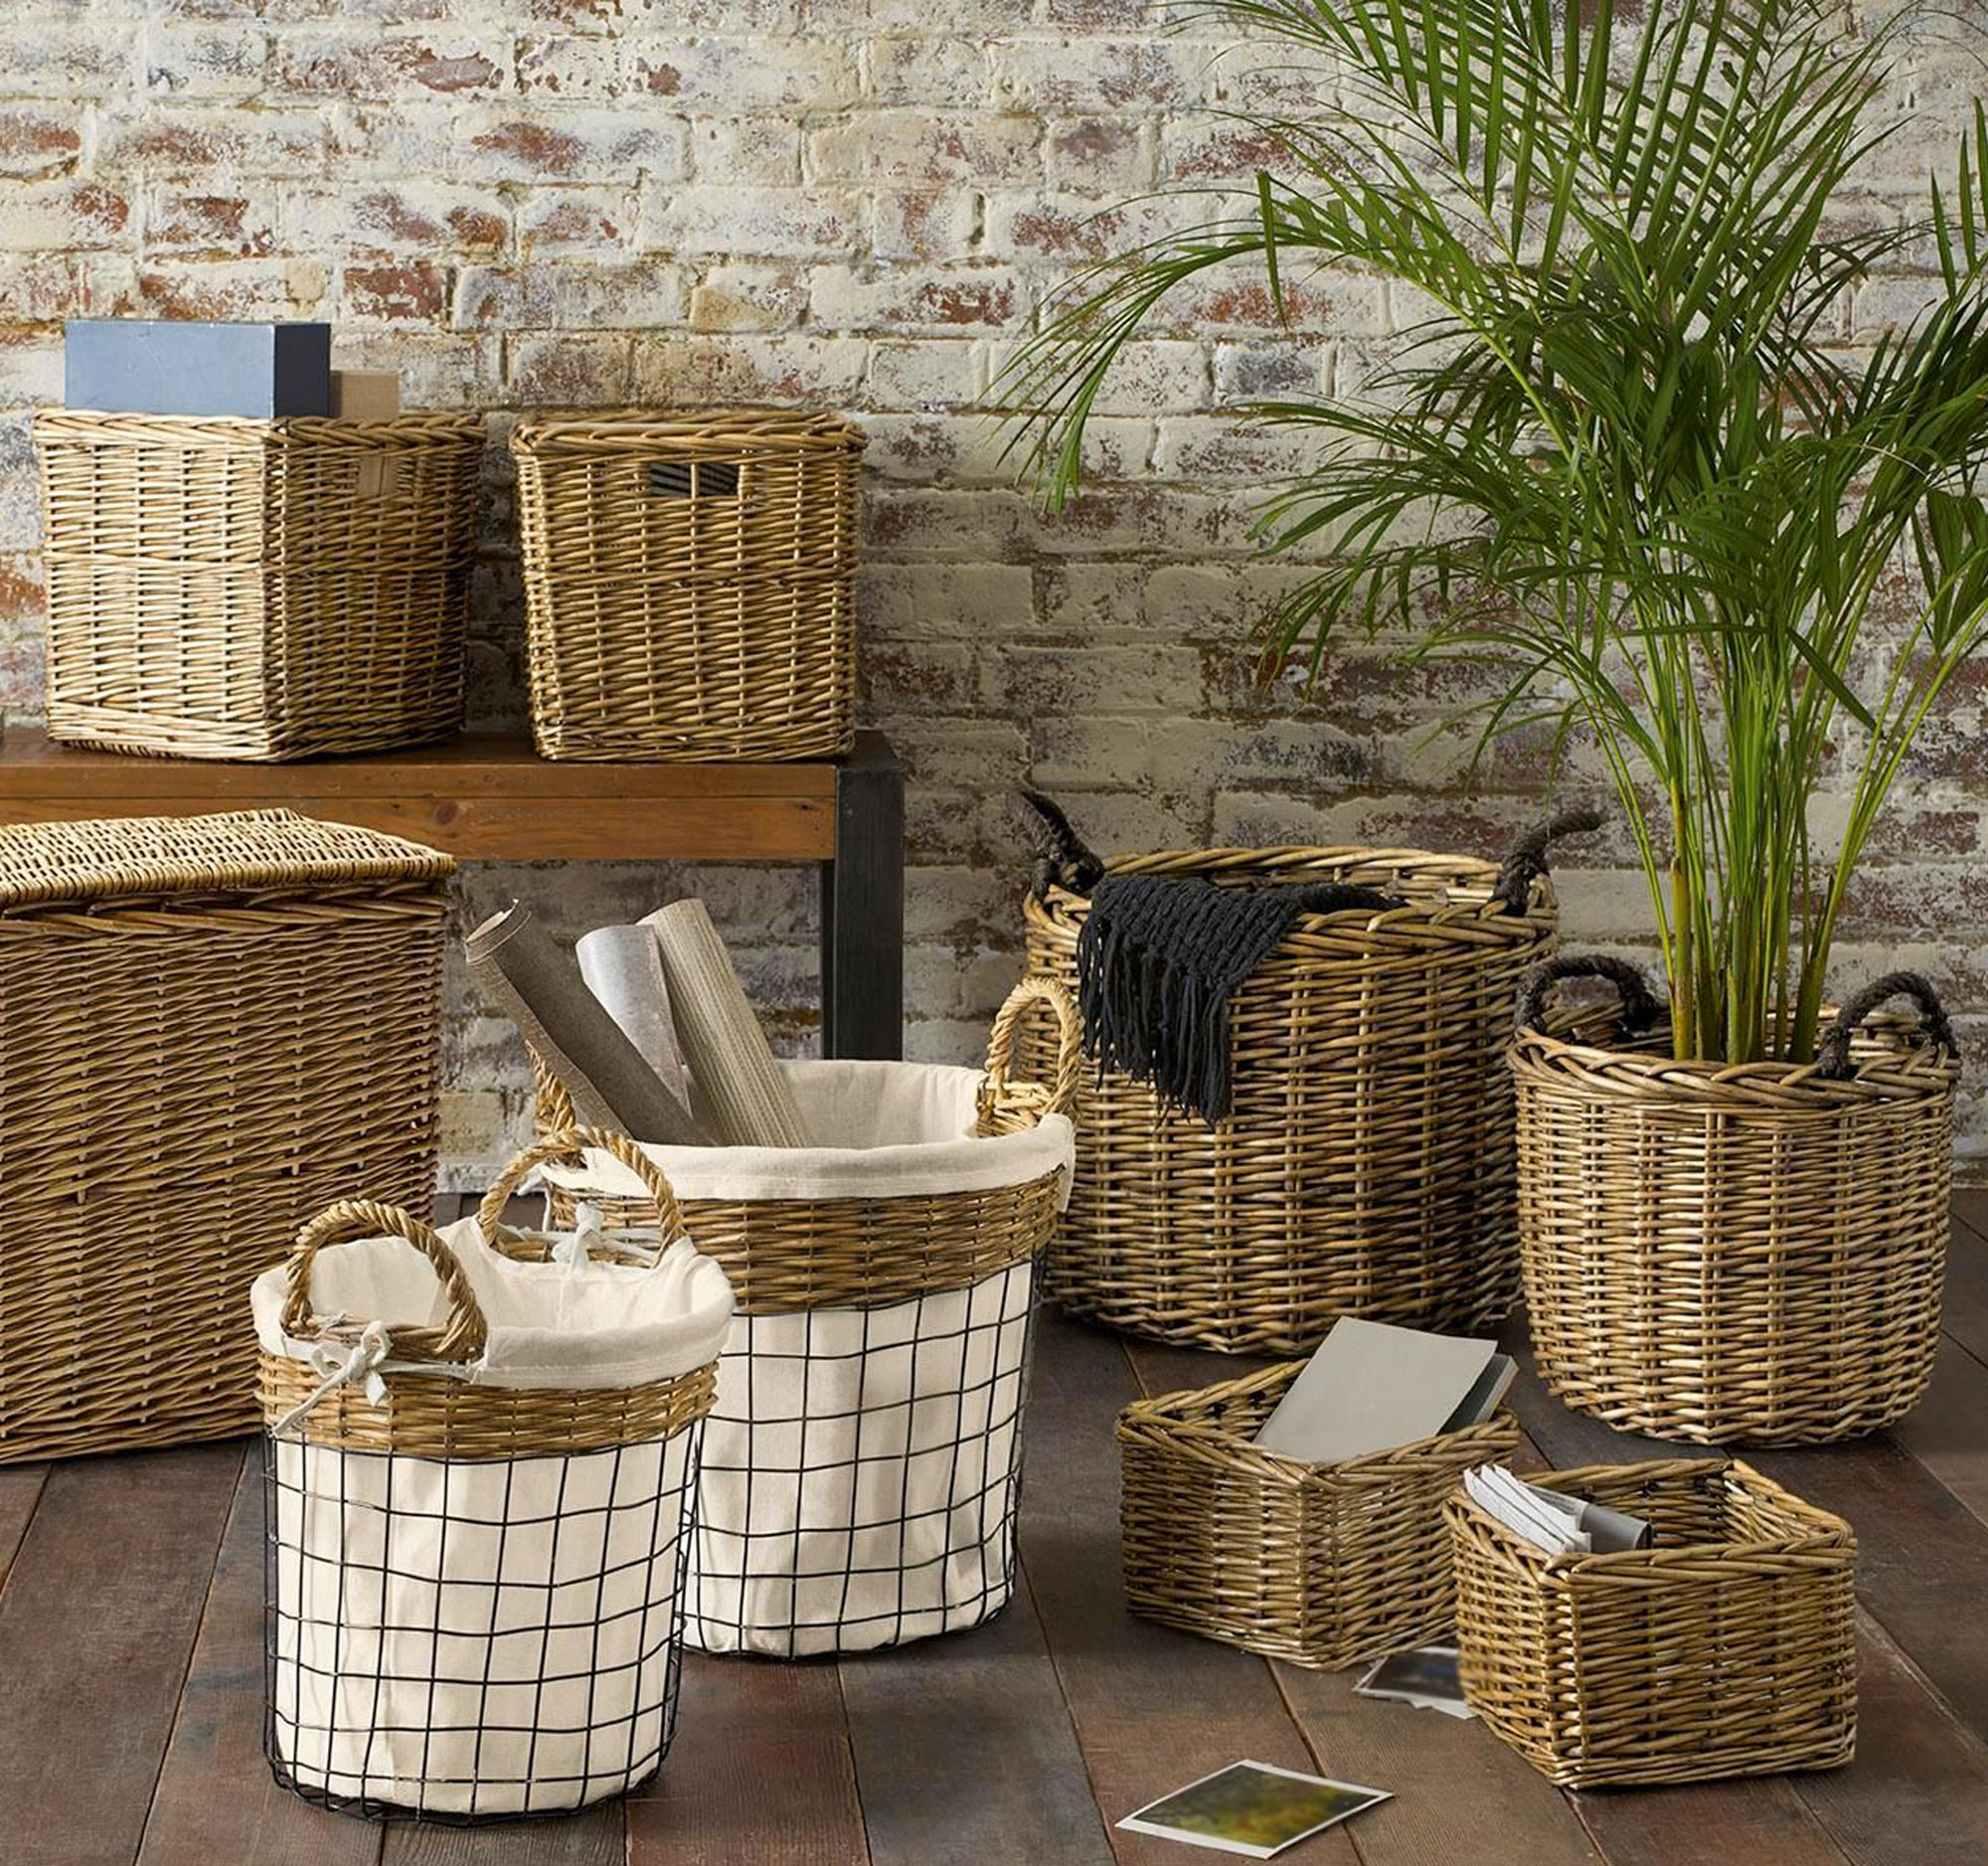 Storage baskets and shelves for organizing